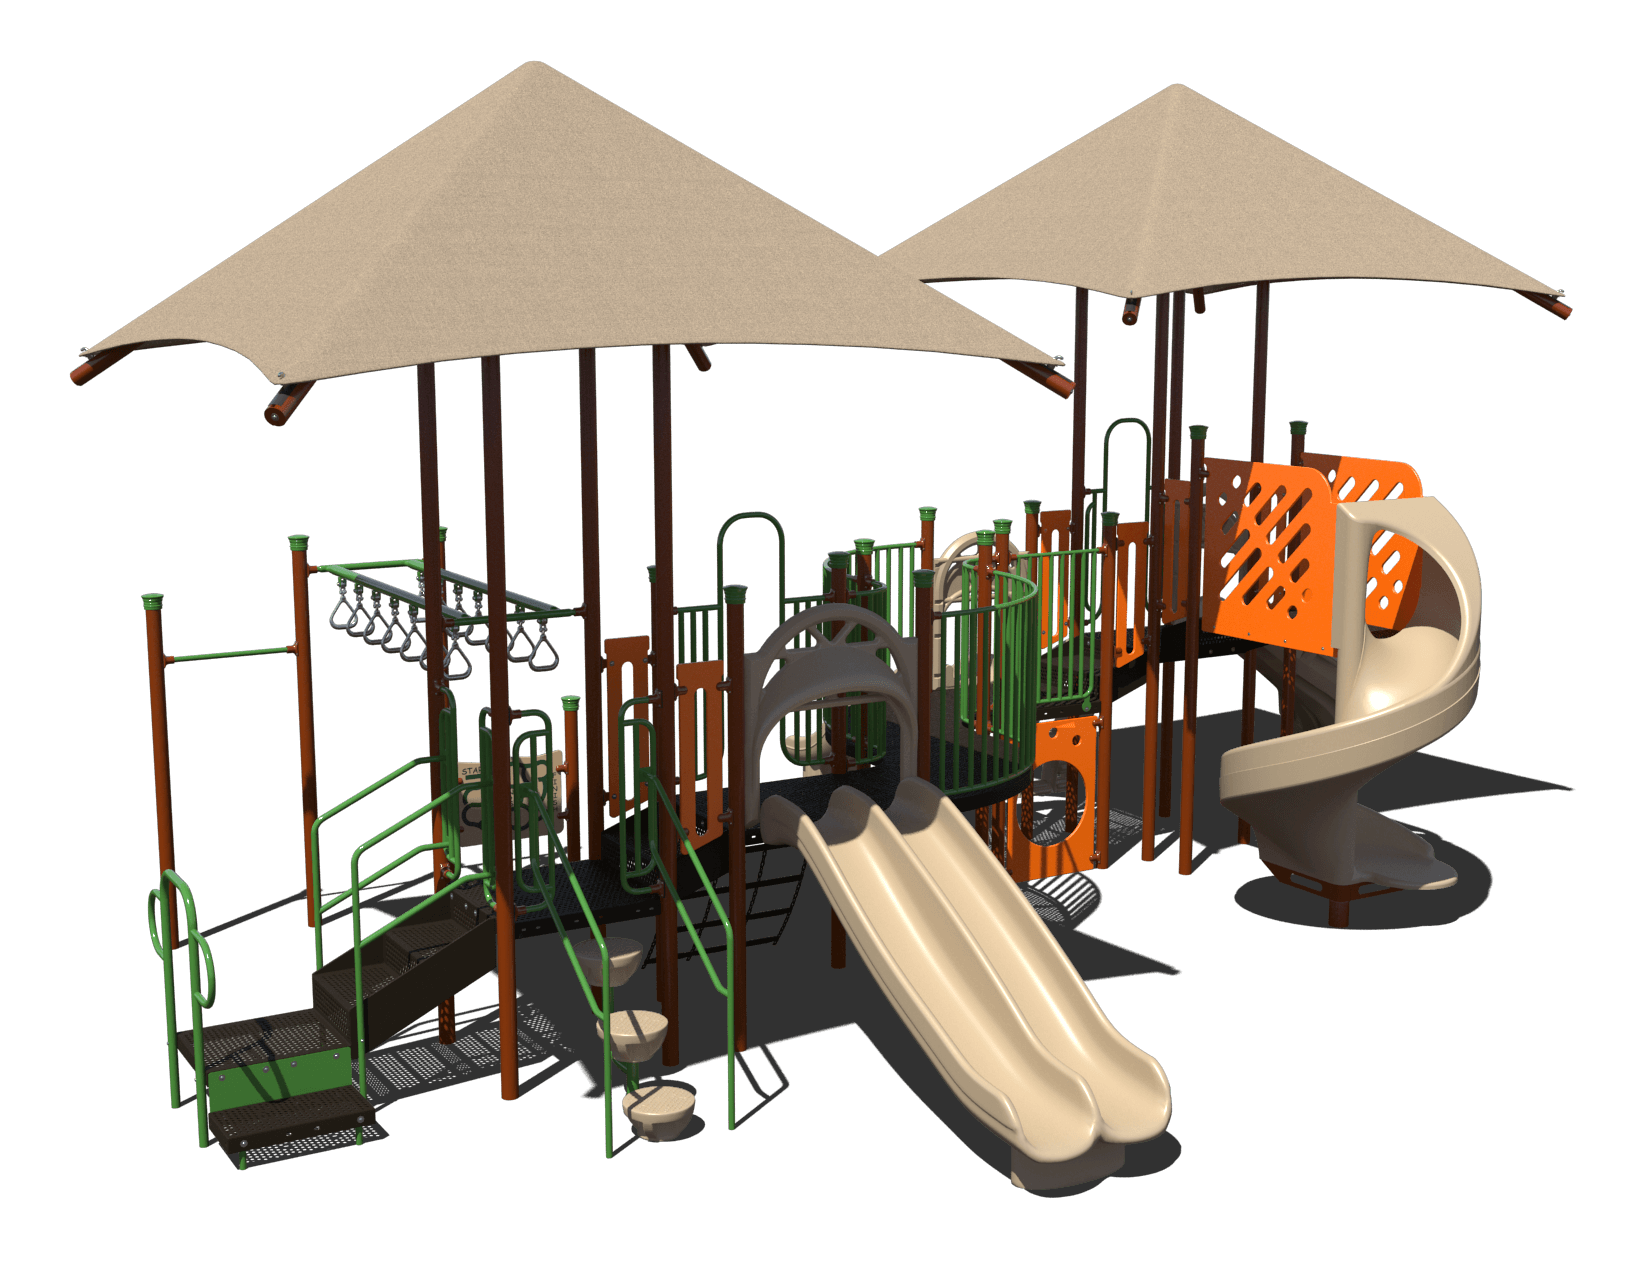 serpintine commercial playground system 1